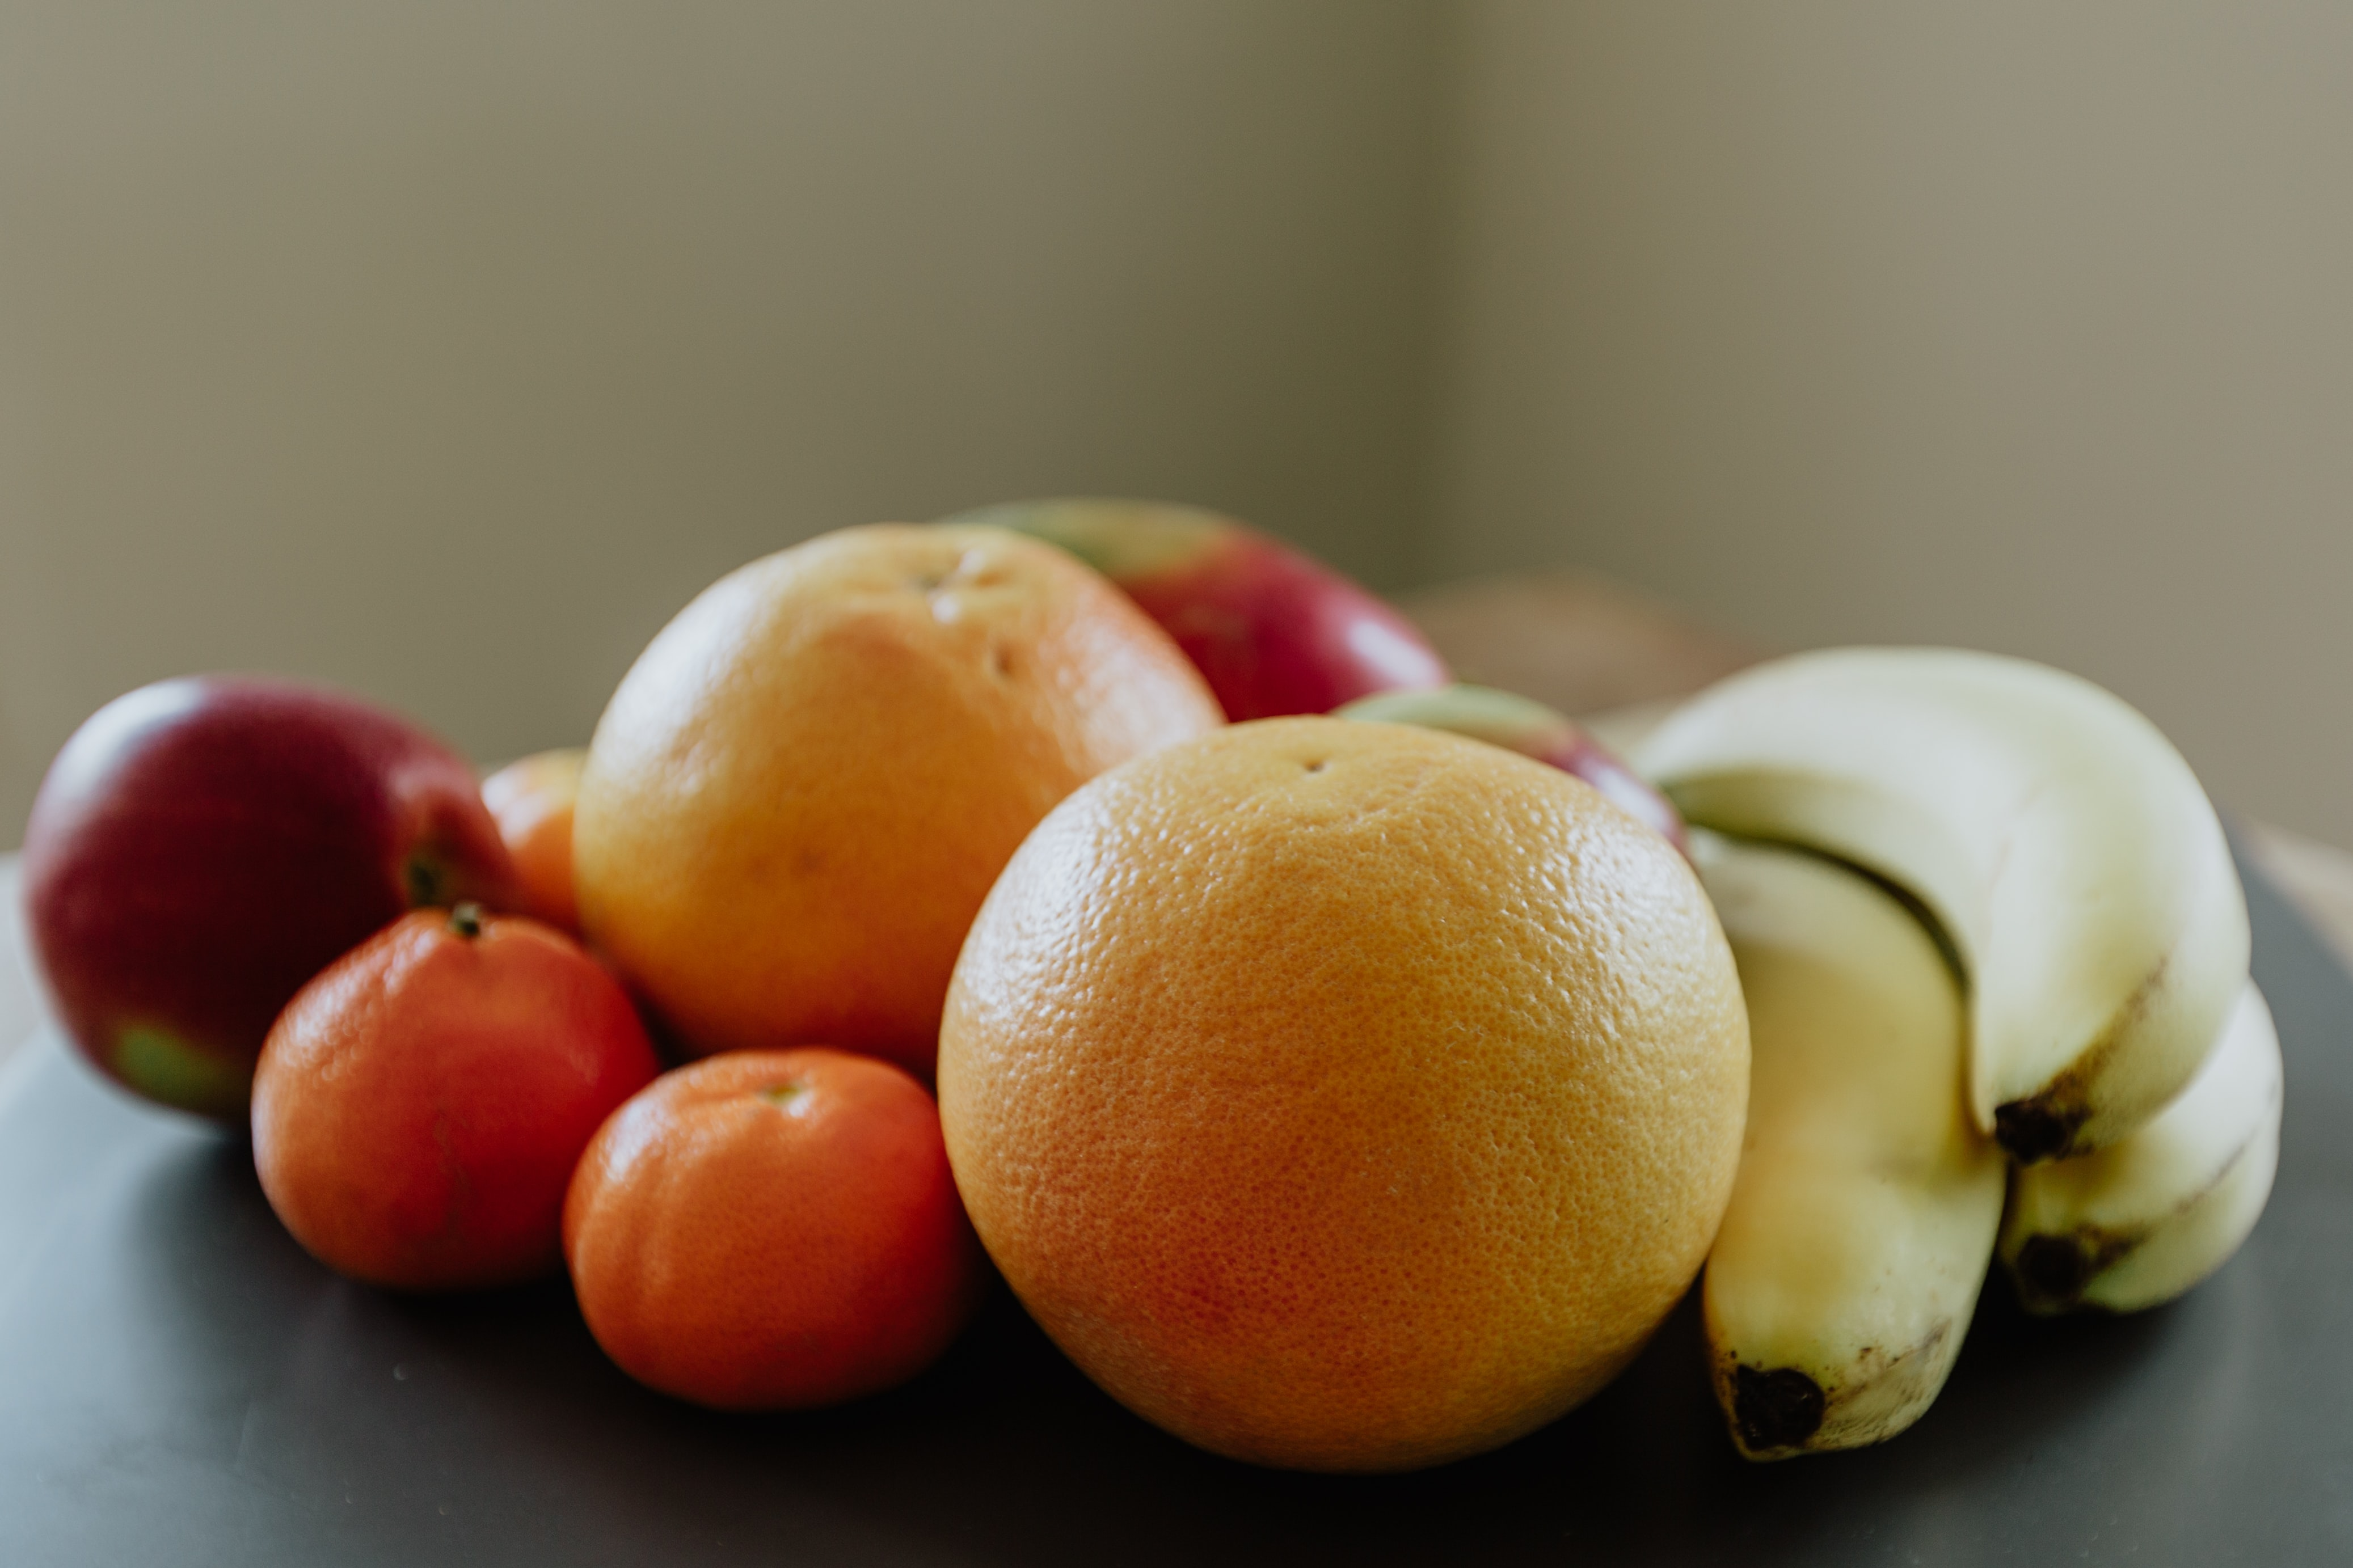 selective focus photography of banana, orange, and apple fruits